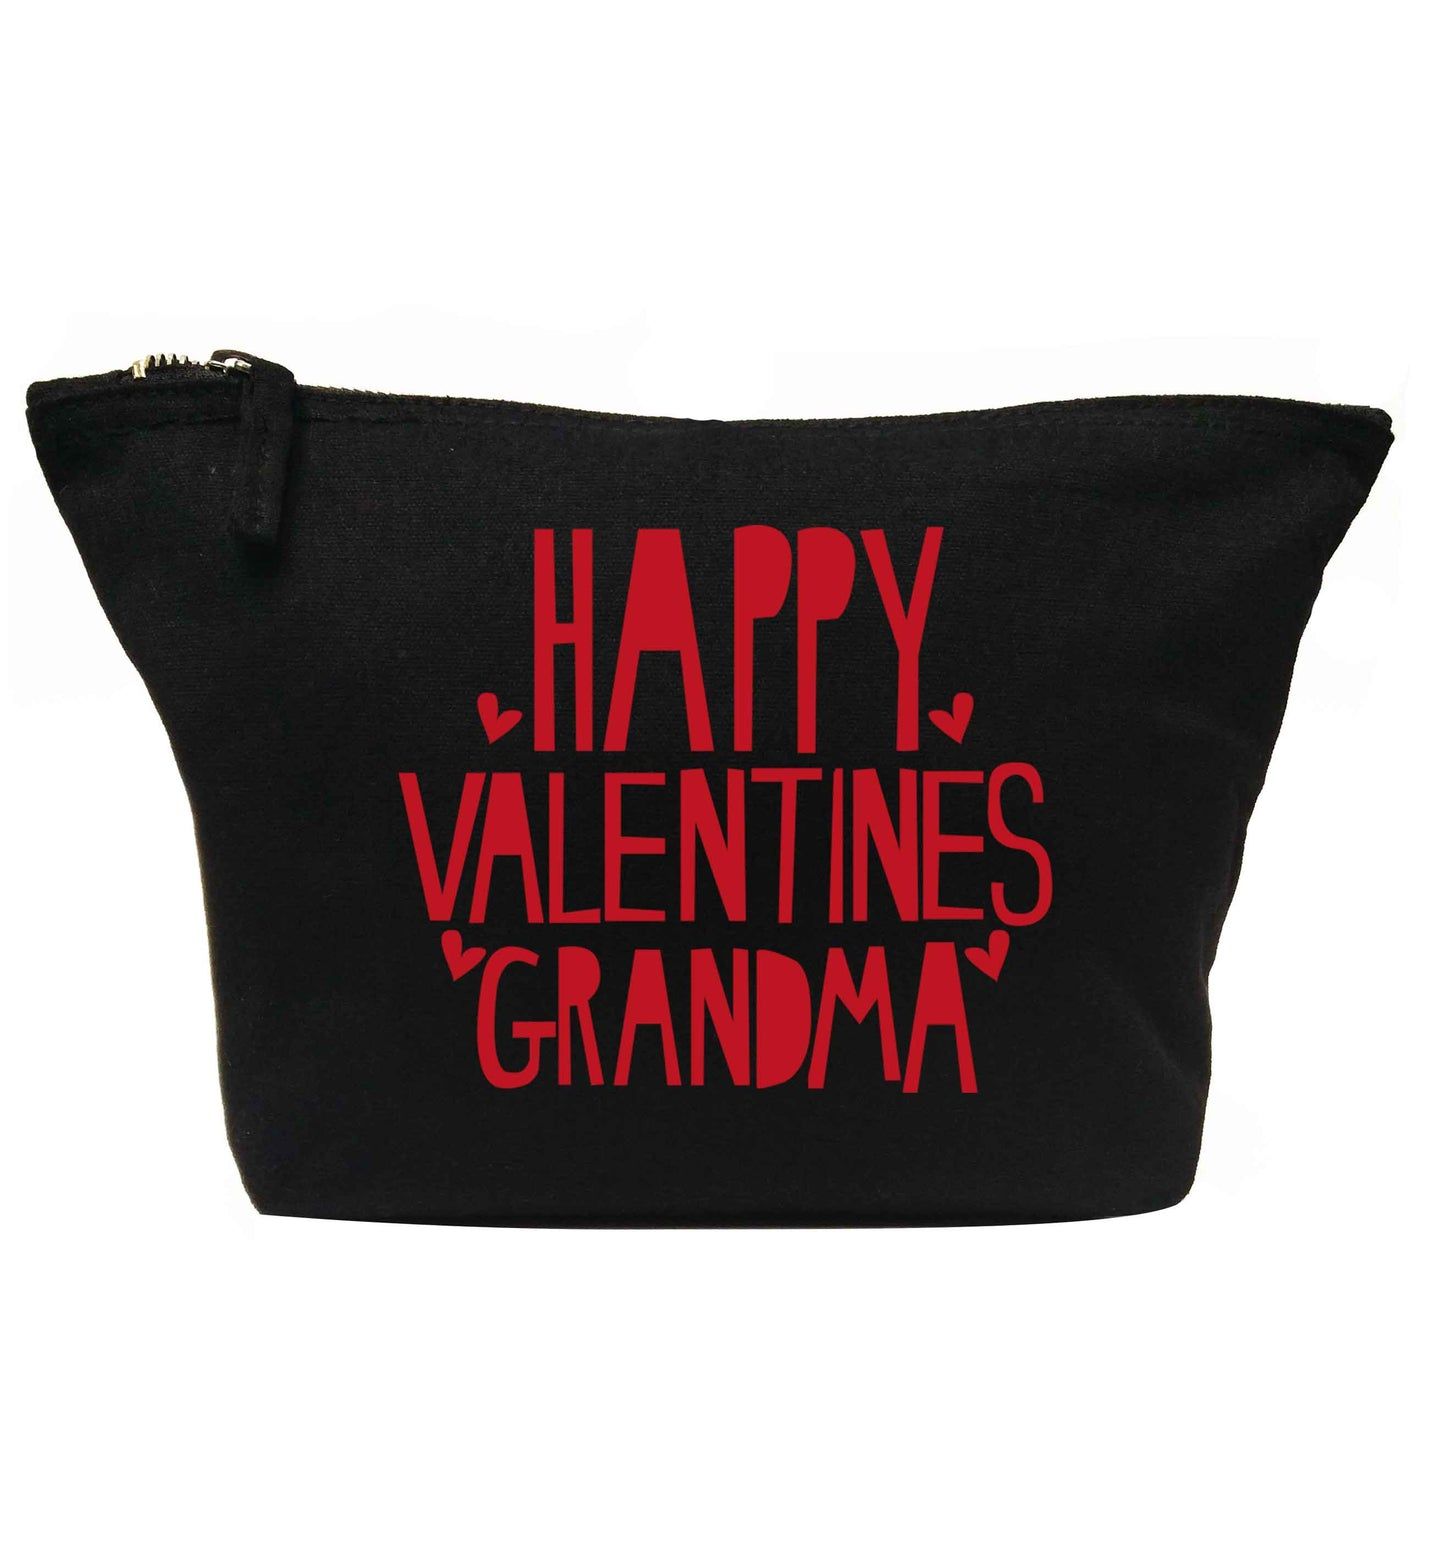 Happy valentines grandma | Makeup / wash bag